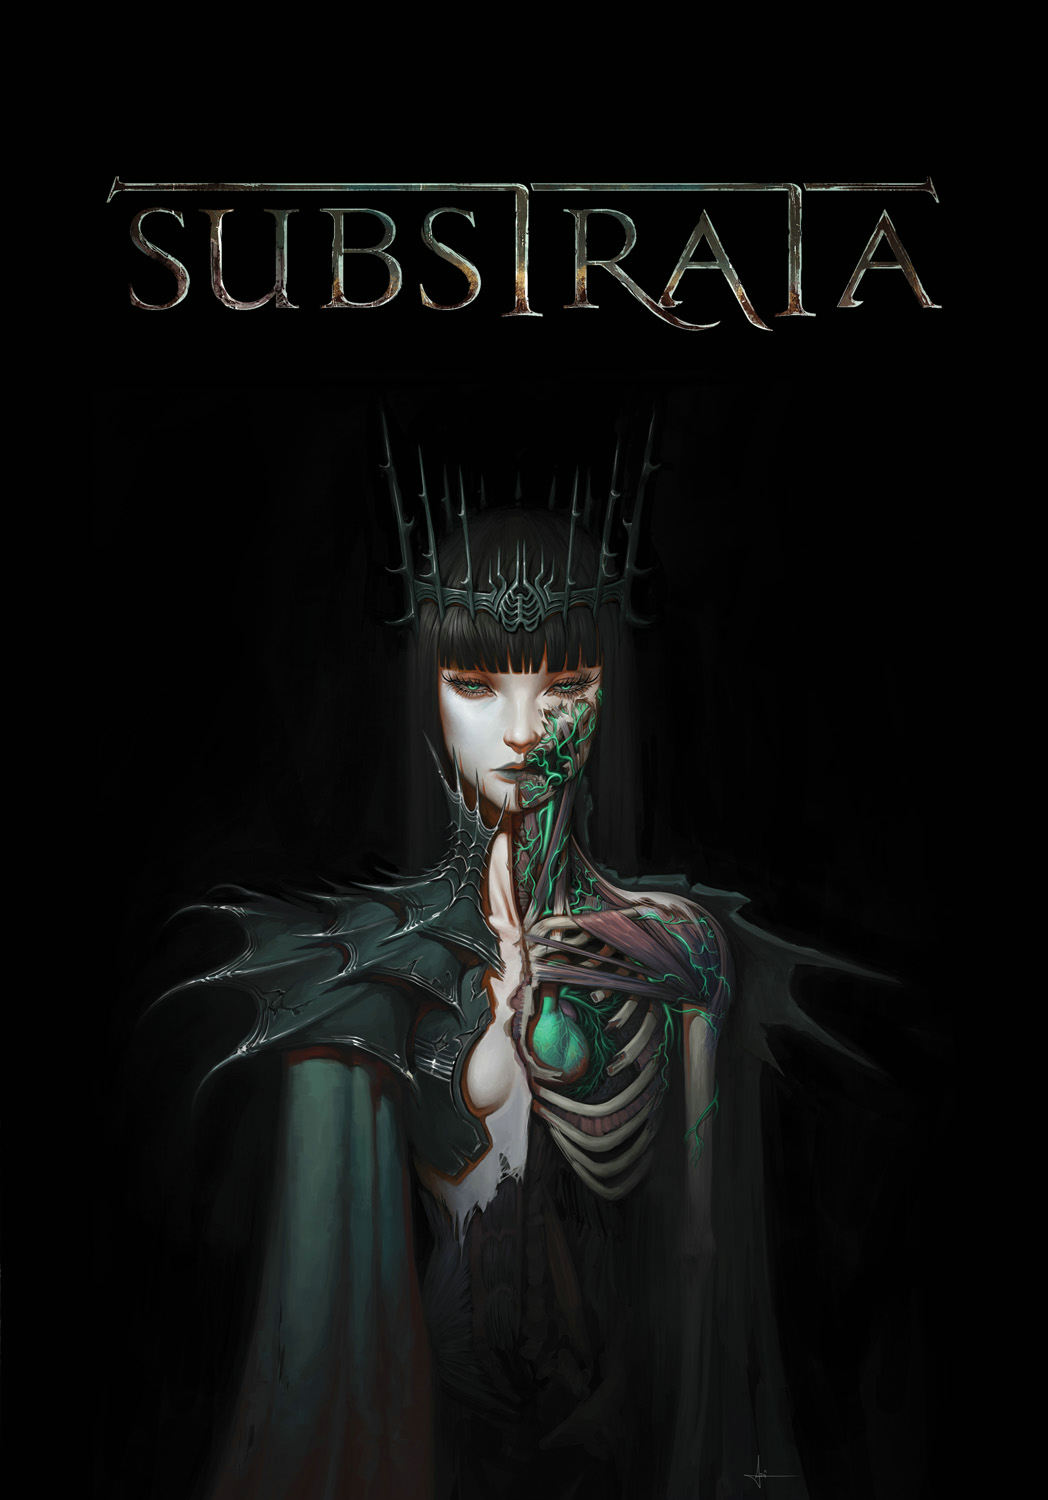 SUBSTRATA Cover Image by Adrian Dadich, text logo design by Michael Scala.